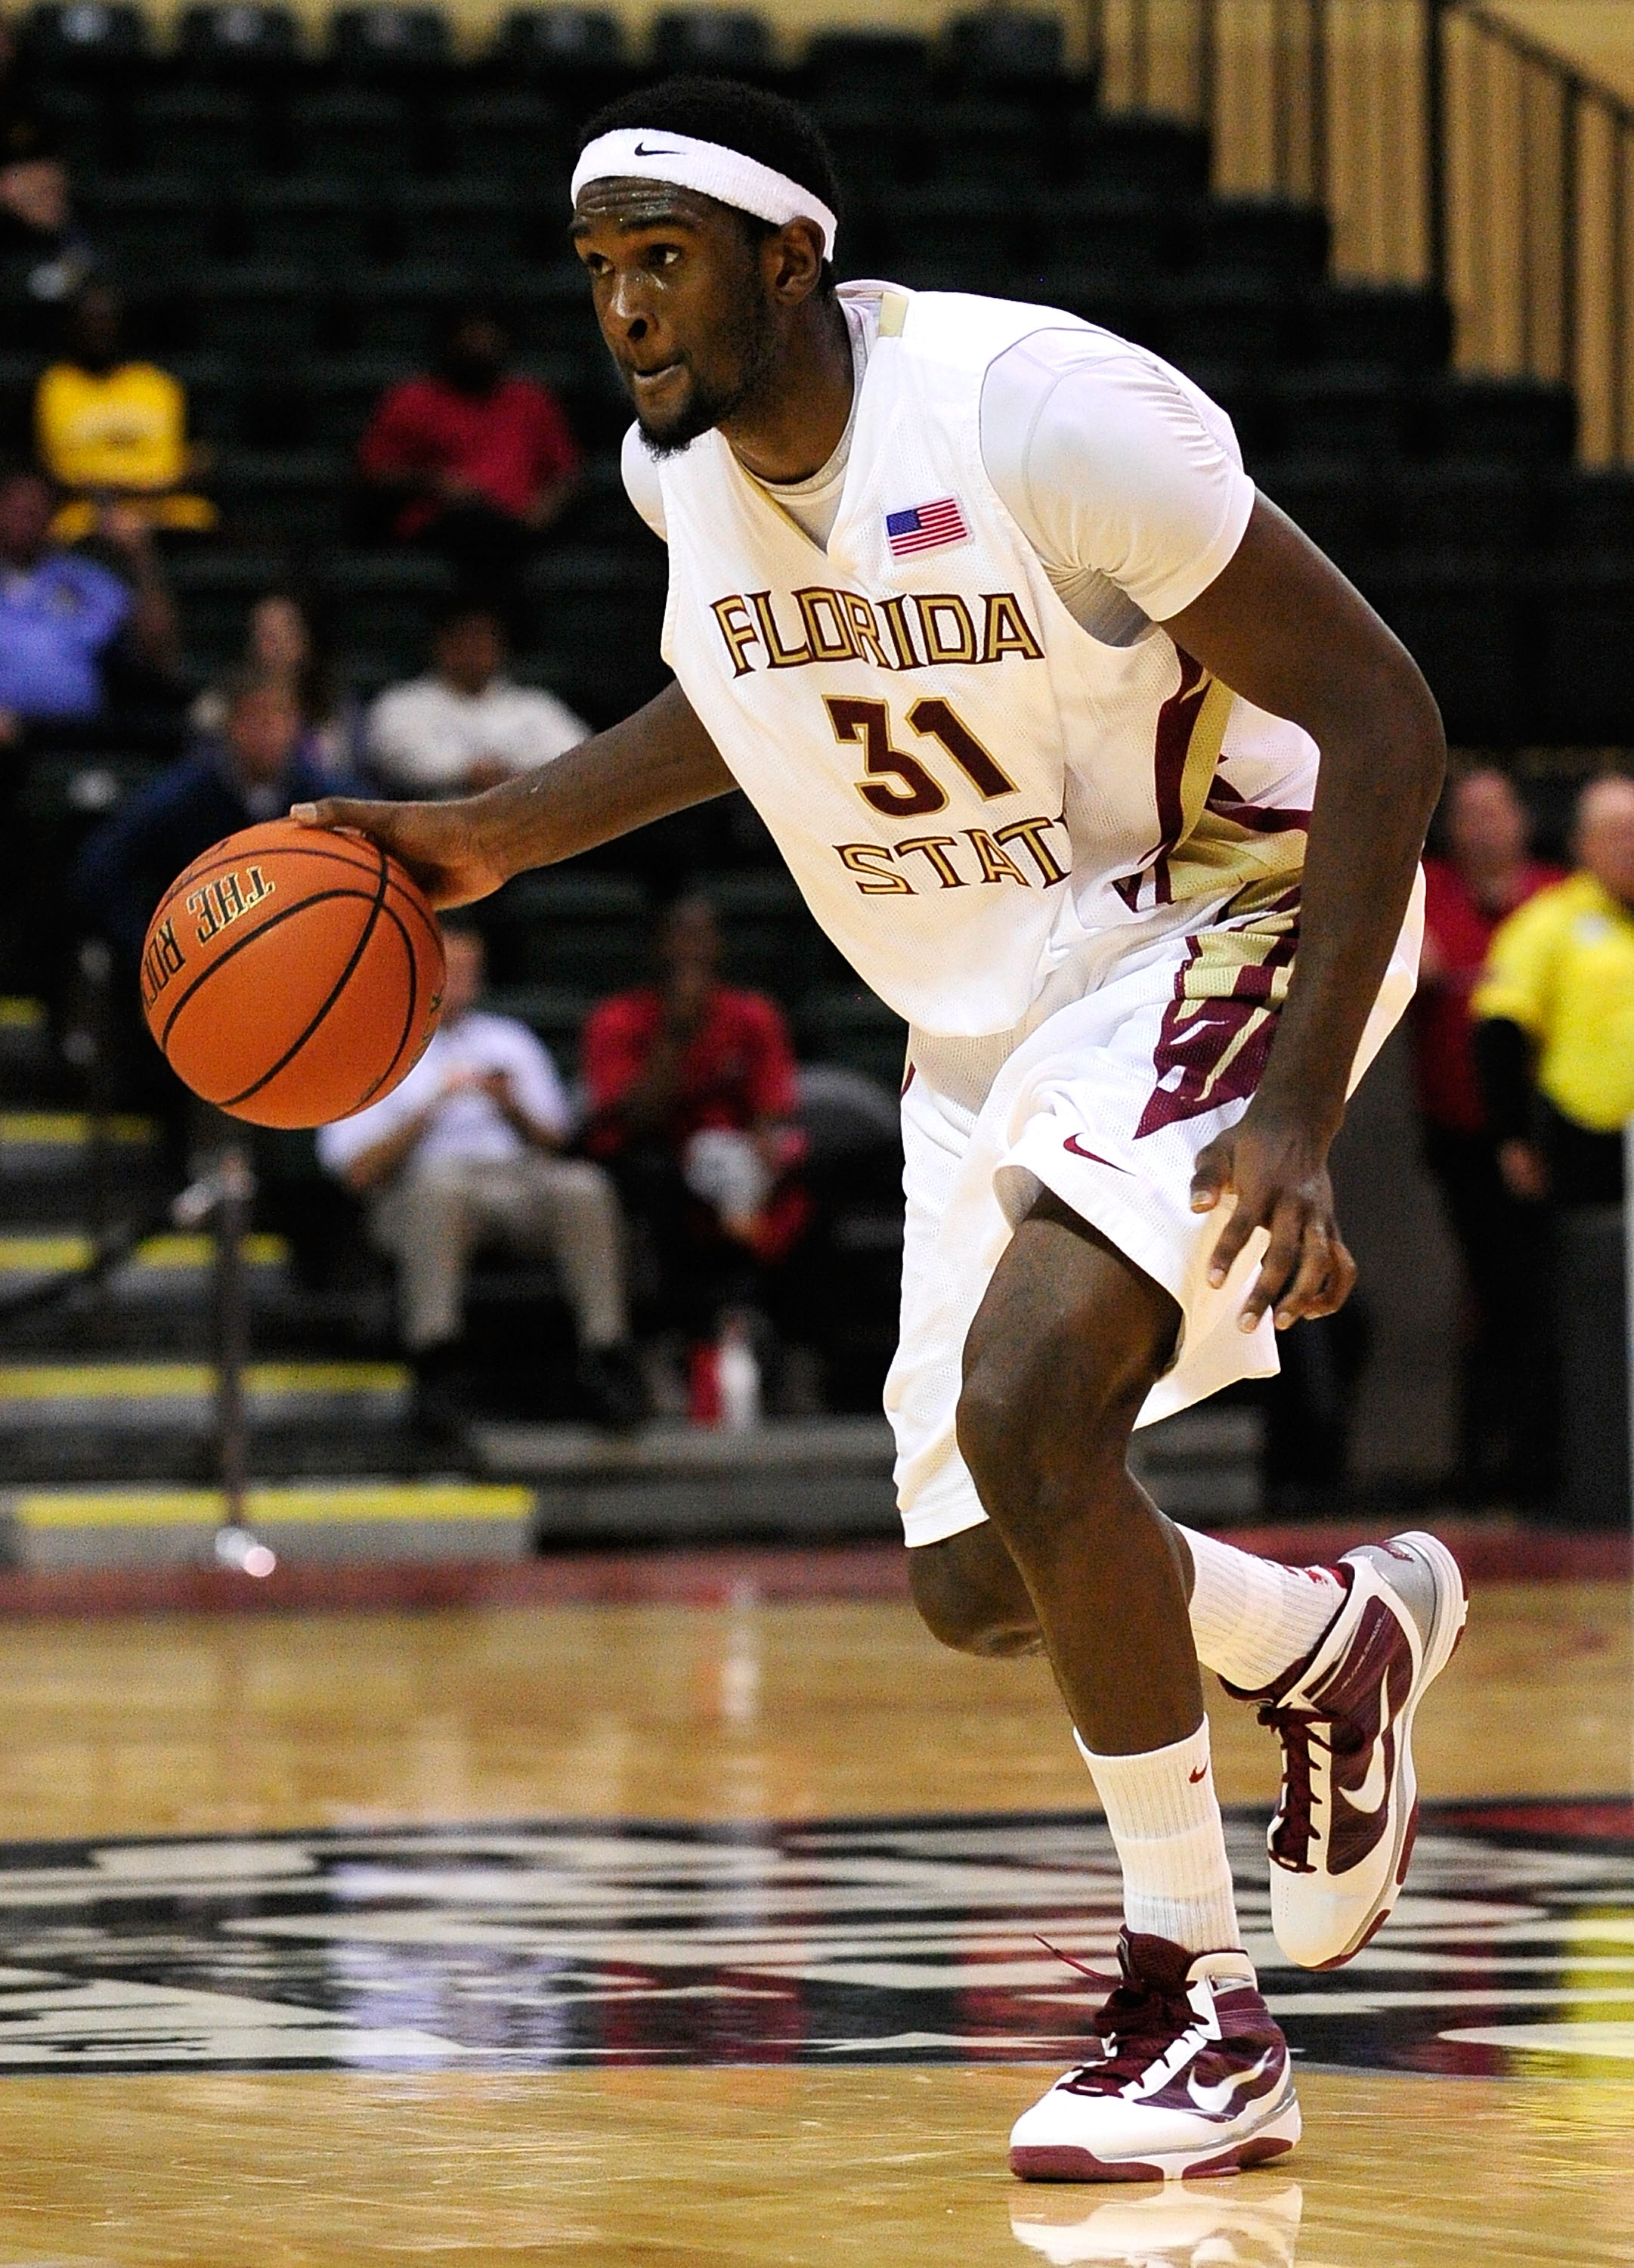 ORLANDO, FL - NOVEMBER 27:  Chris Singleton #31 of the Florida State Seminoles looks to pass against the Alabama Crimson Tide during the Old Spice Classic at Disney's Milk House on November 27, 2009 in Orlando, Florida.  (Photo by Sam Greenwood/Getty Imag